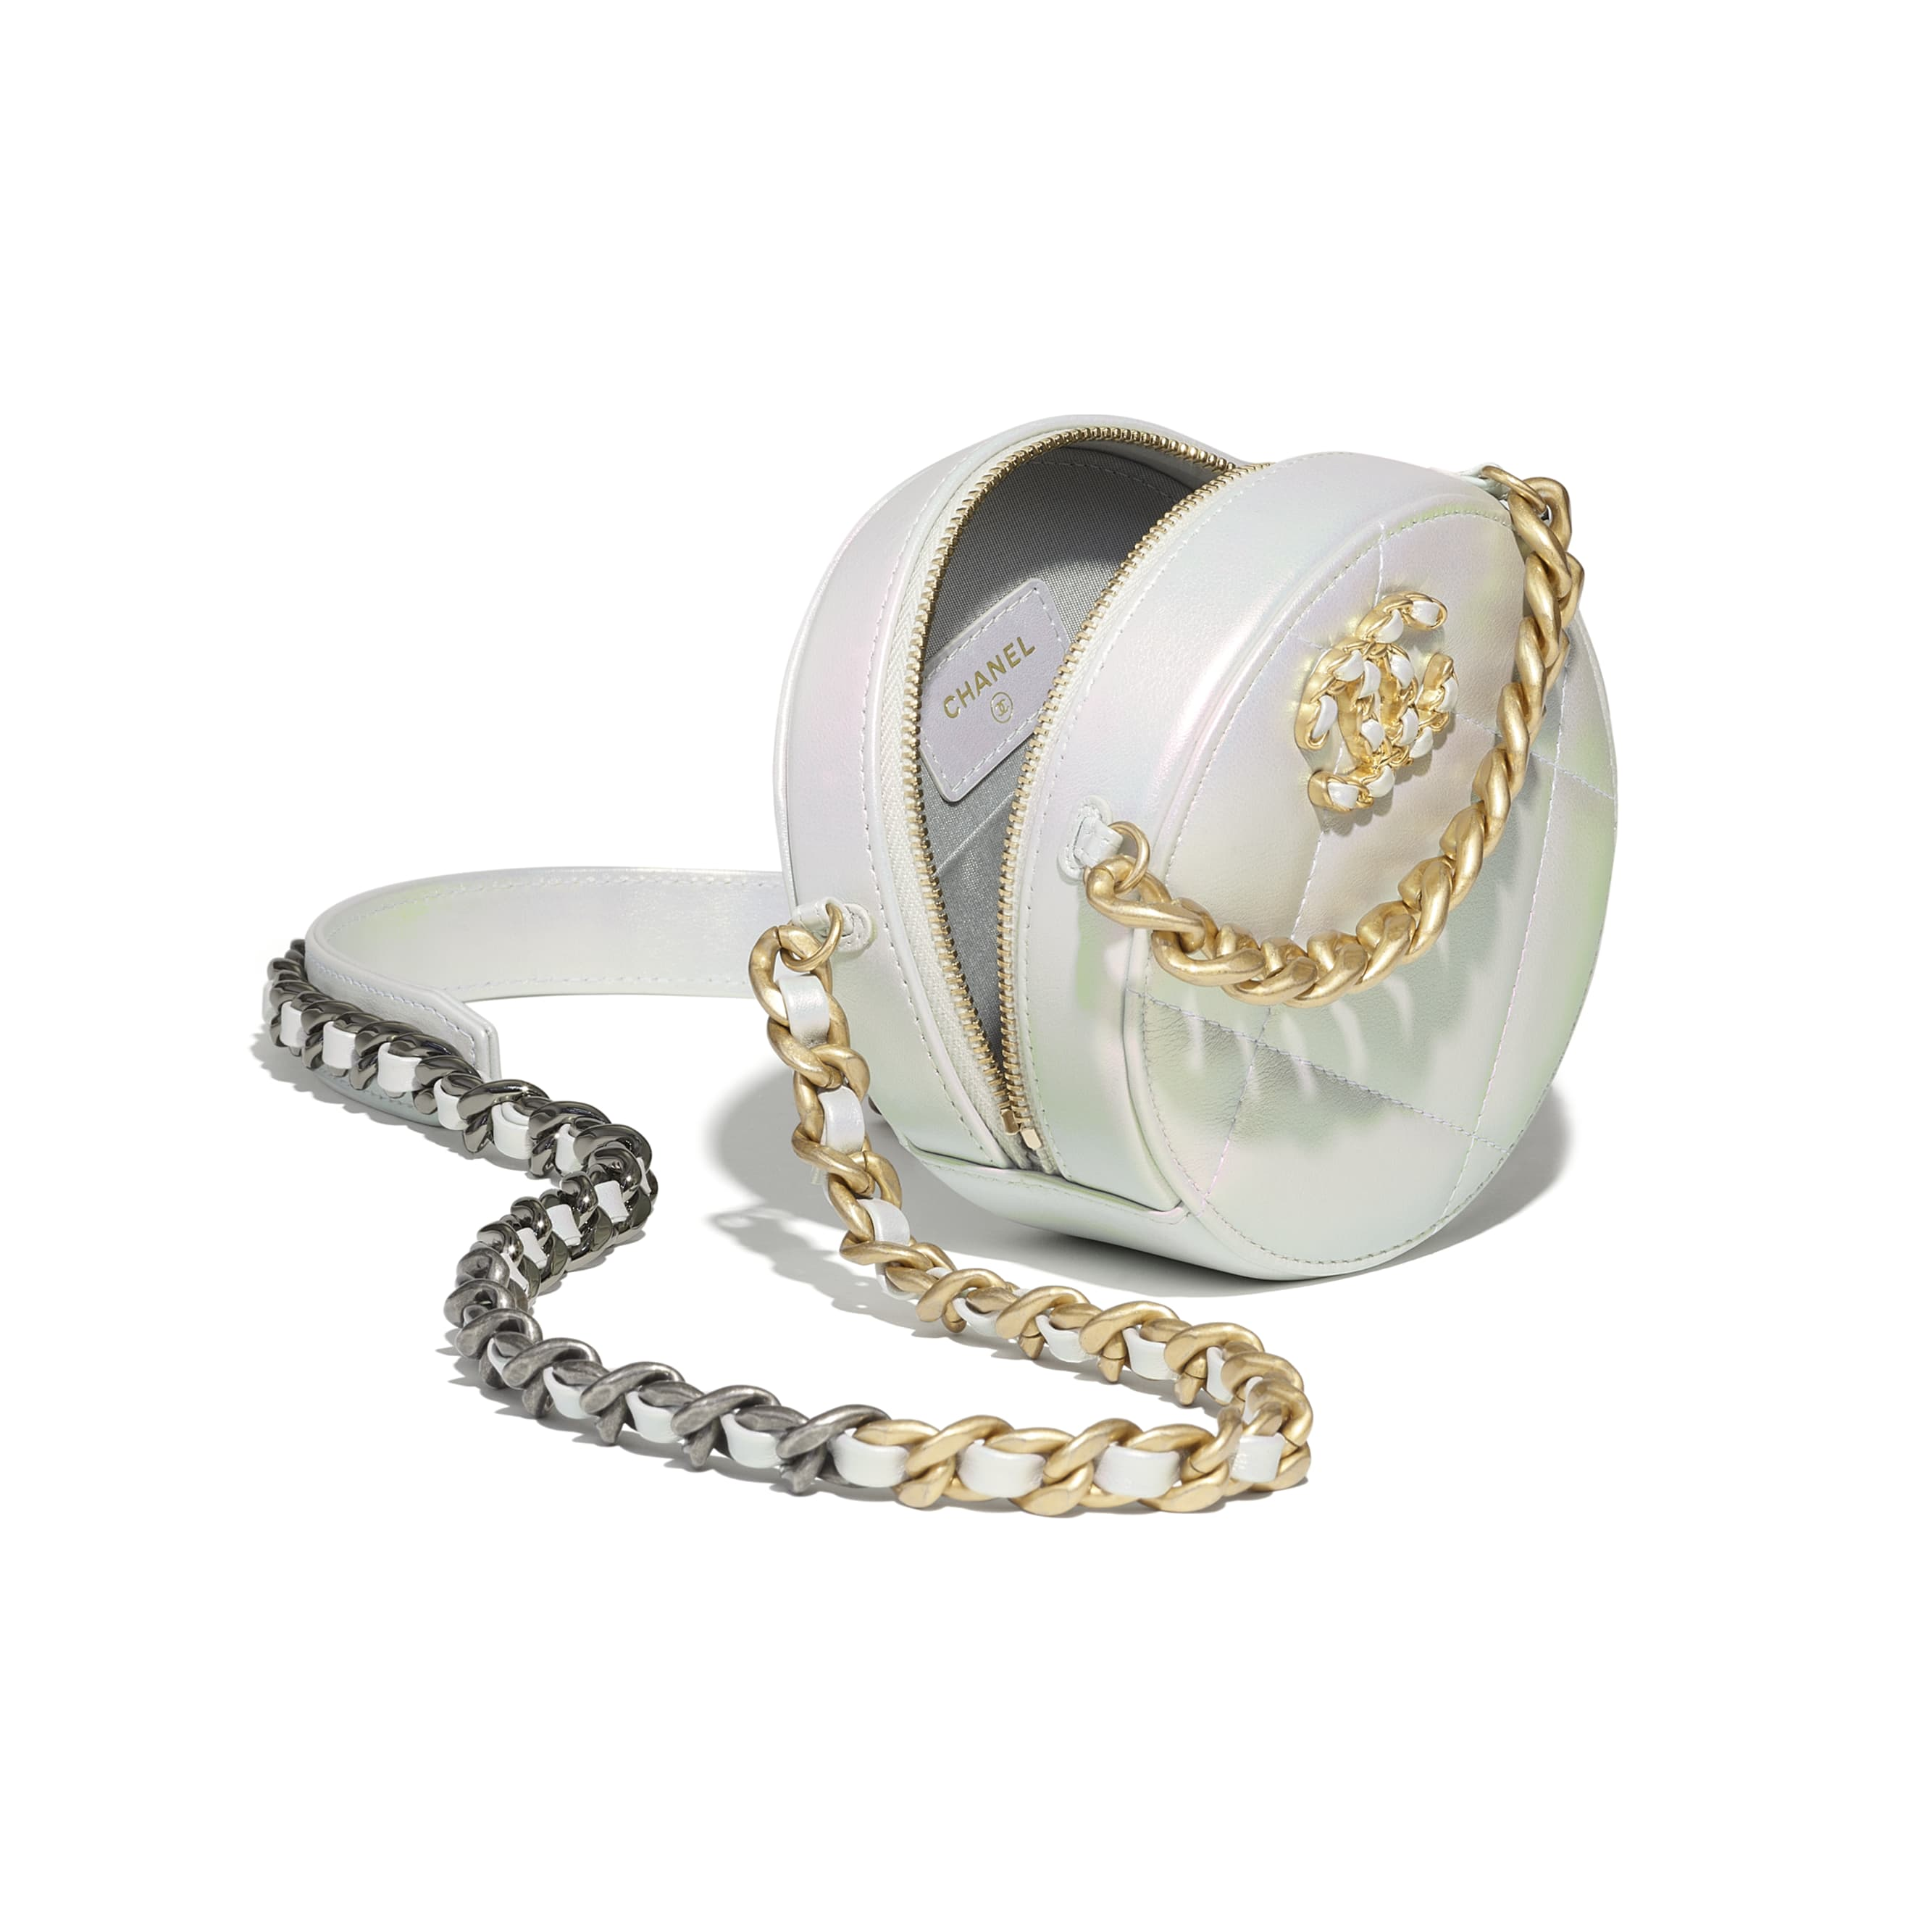 CHANEL 19 Clutch with Chain - White - Iridescent Calfskin, Gold-Tone, Silver-Tone & Ruthenium-Finish Metal - CHANEL - Other view - see standard sized version